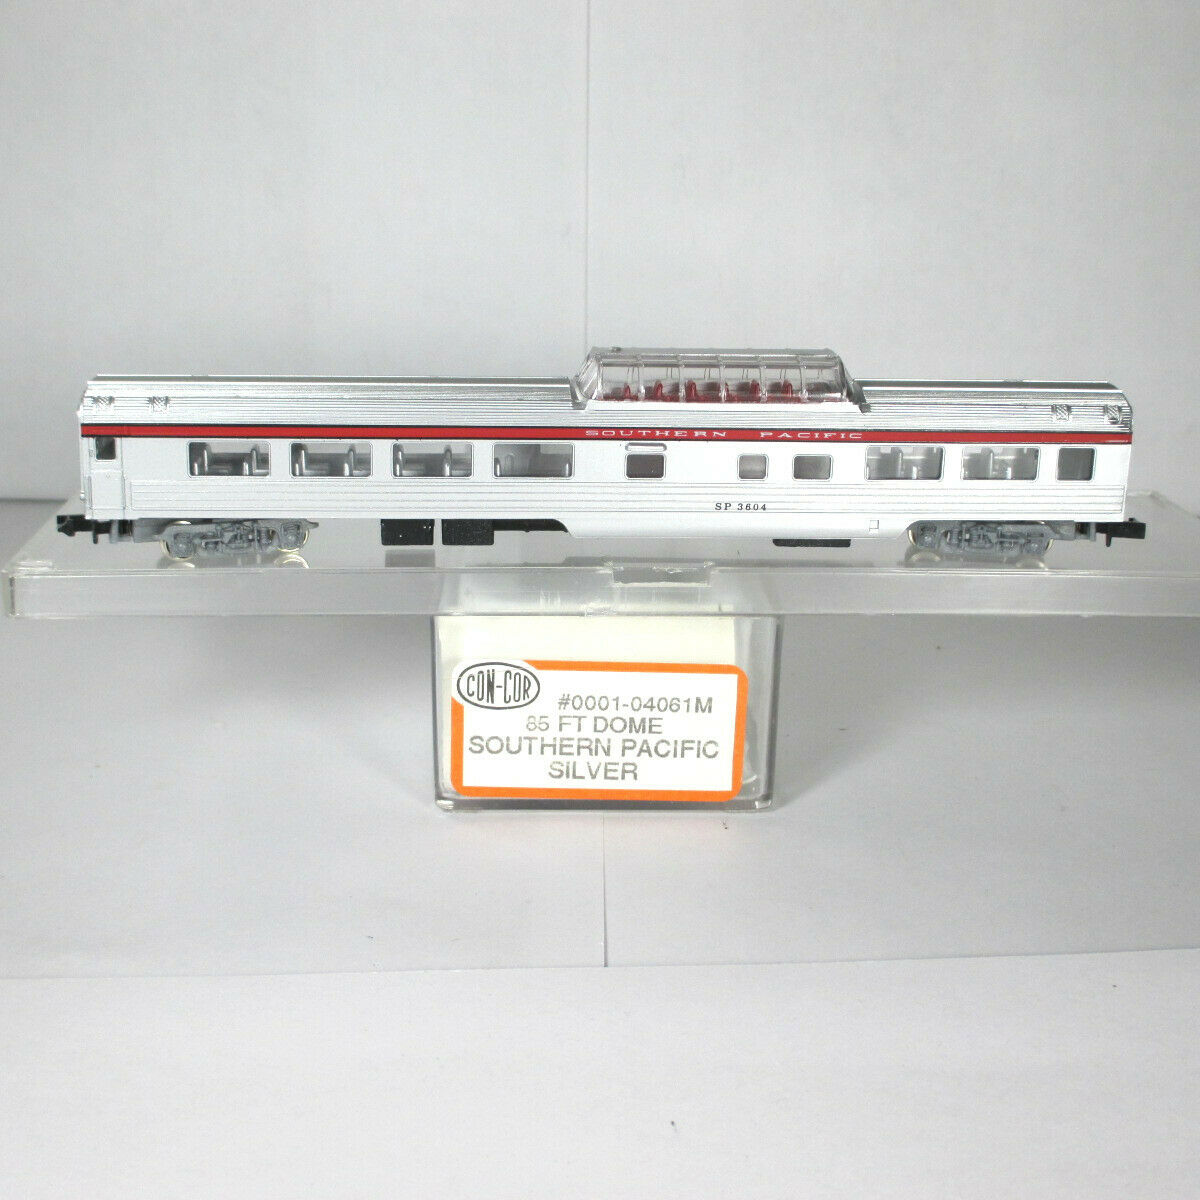 N Scale - Con-Cor - 0001-04061M - Passenger Car, Lightweight, Corrugated Mid-Train Dome - Southern Pacific - 3604